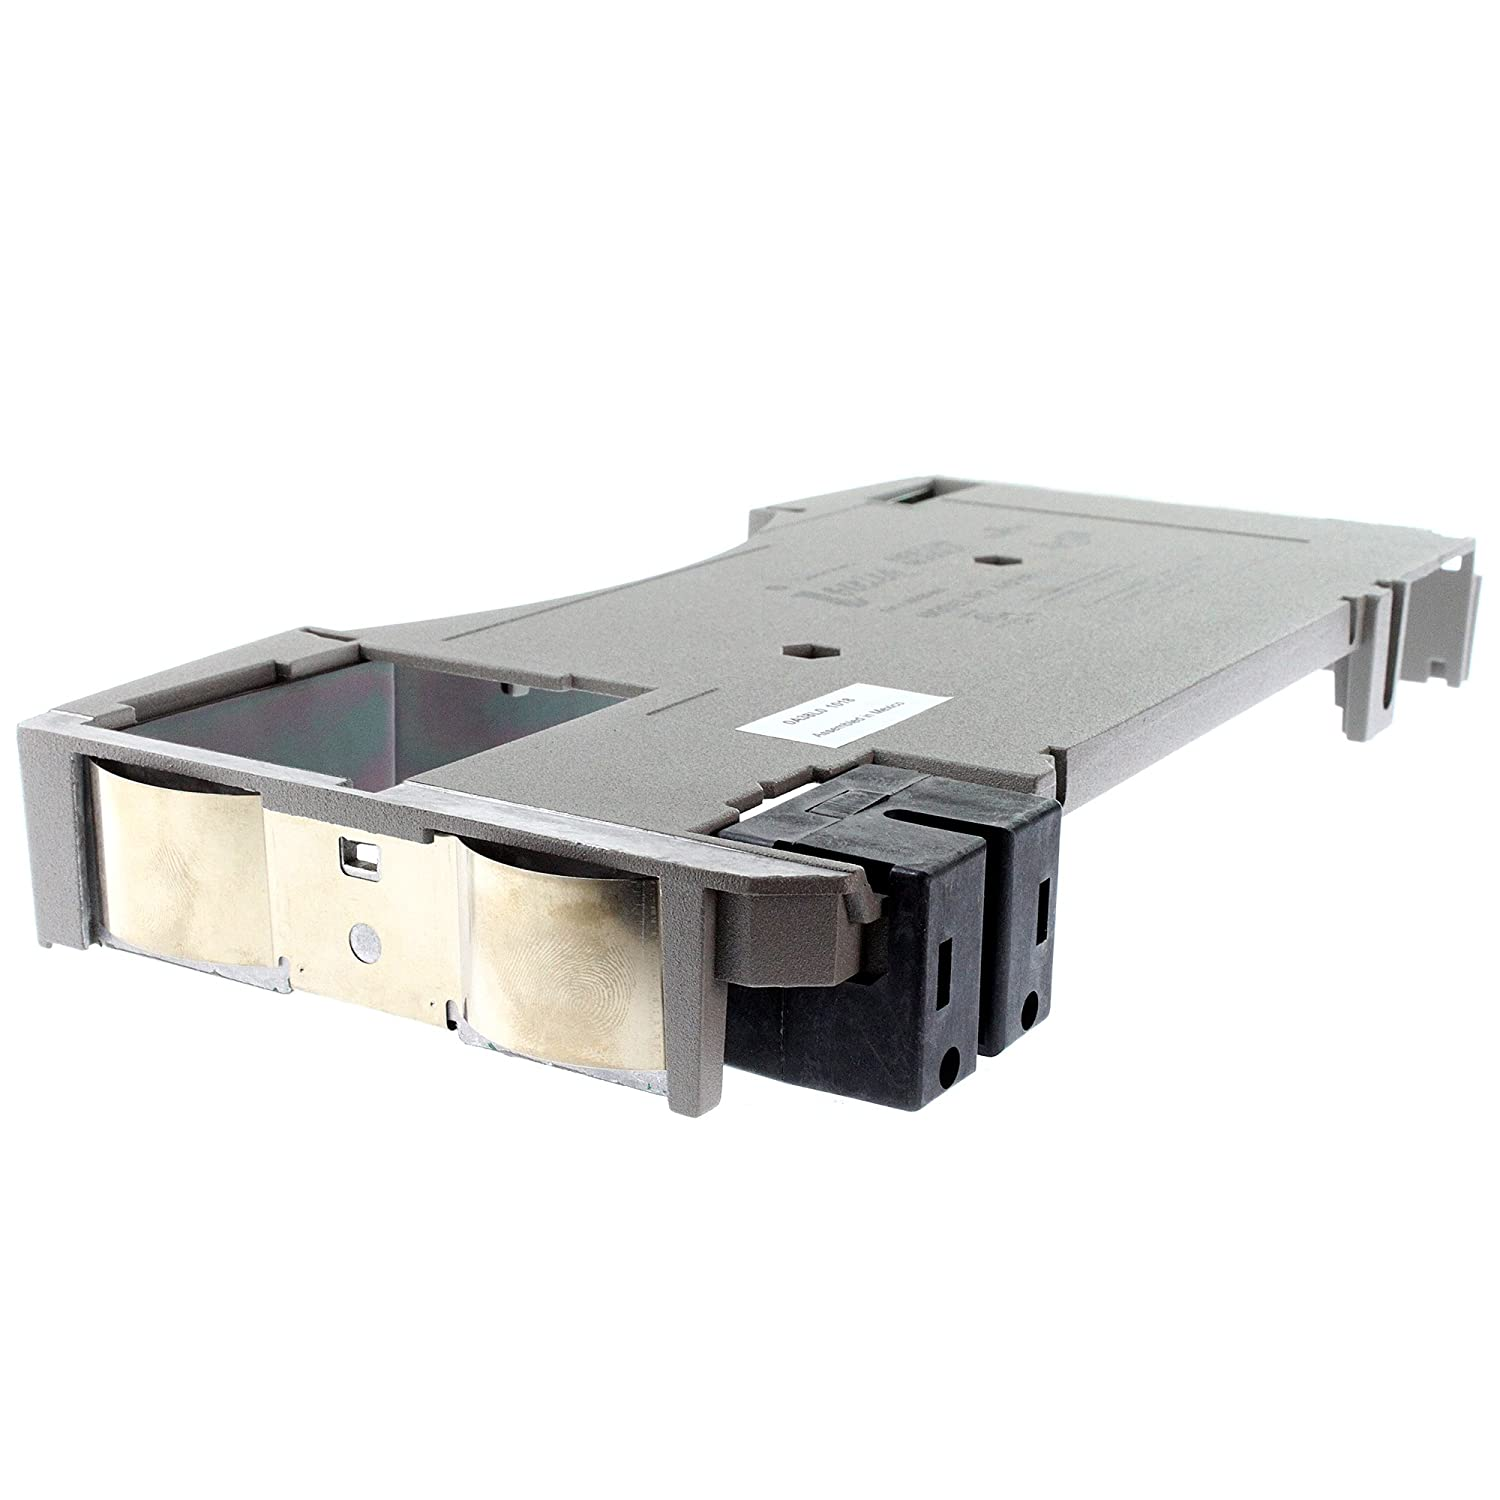 Leviton I0A20-000 4-0099 Colortran Dimmer Rack Iseries Airflow ...